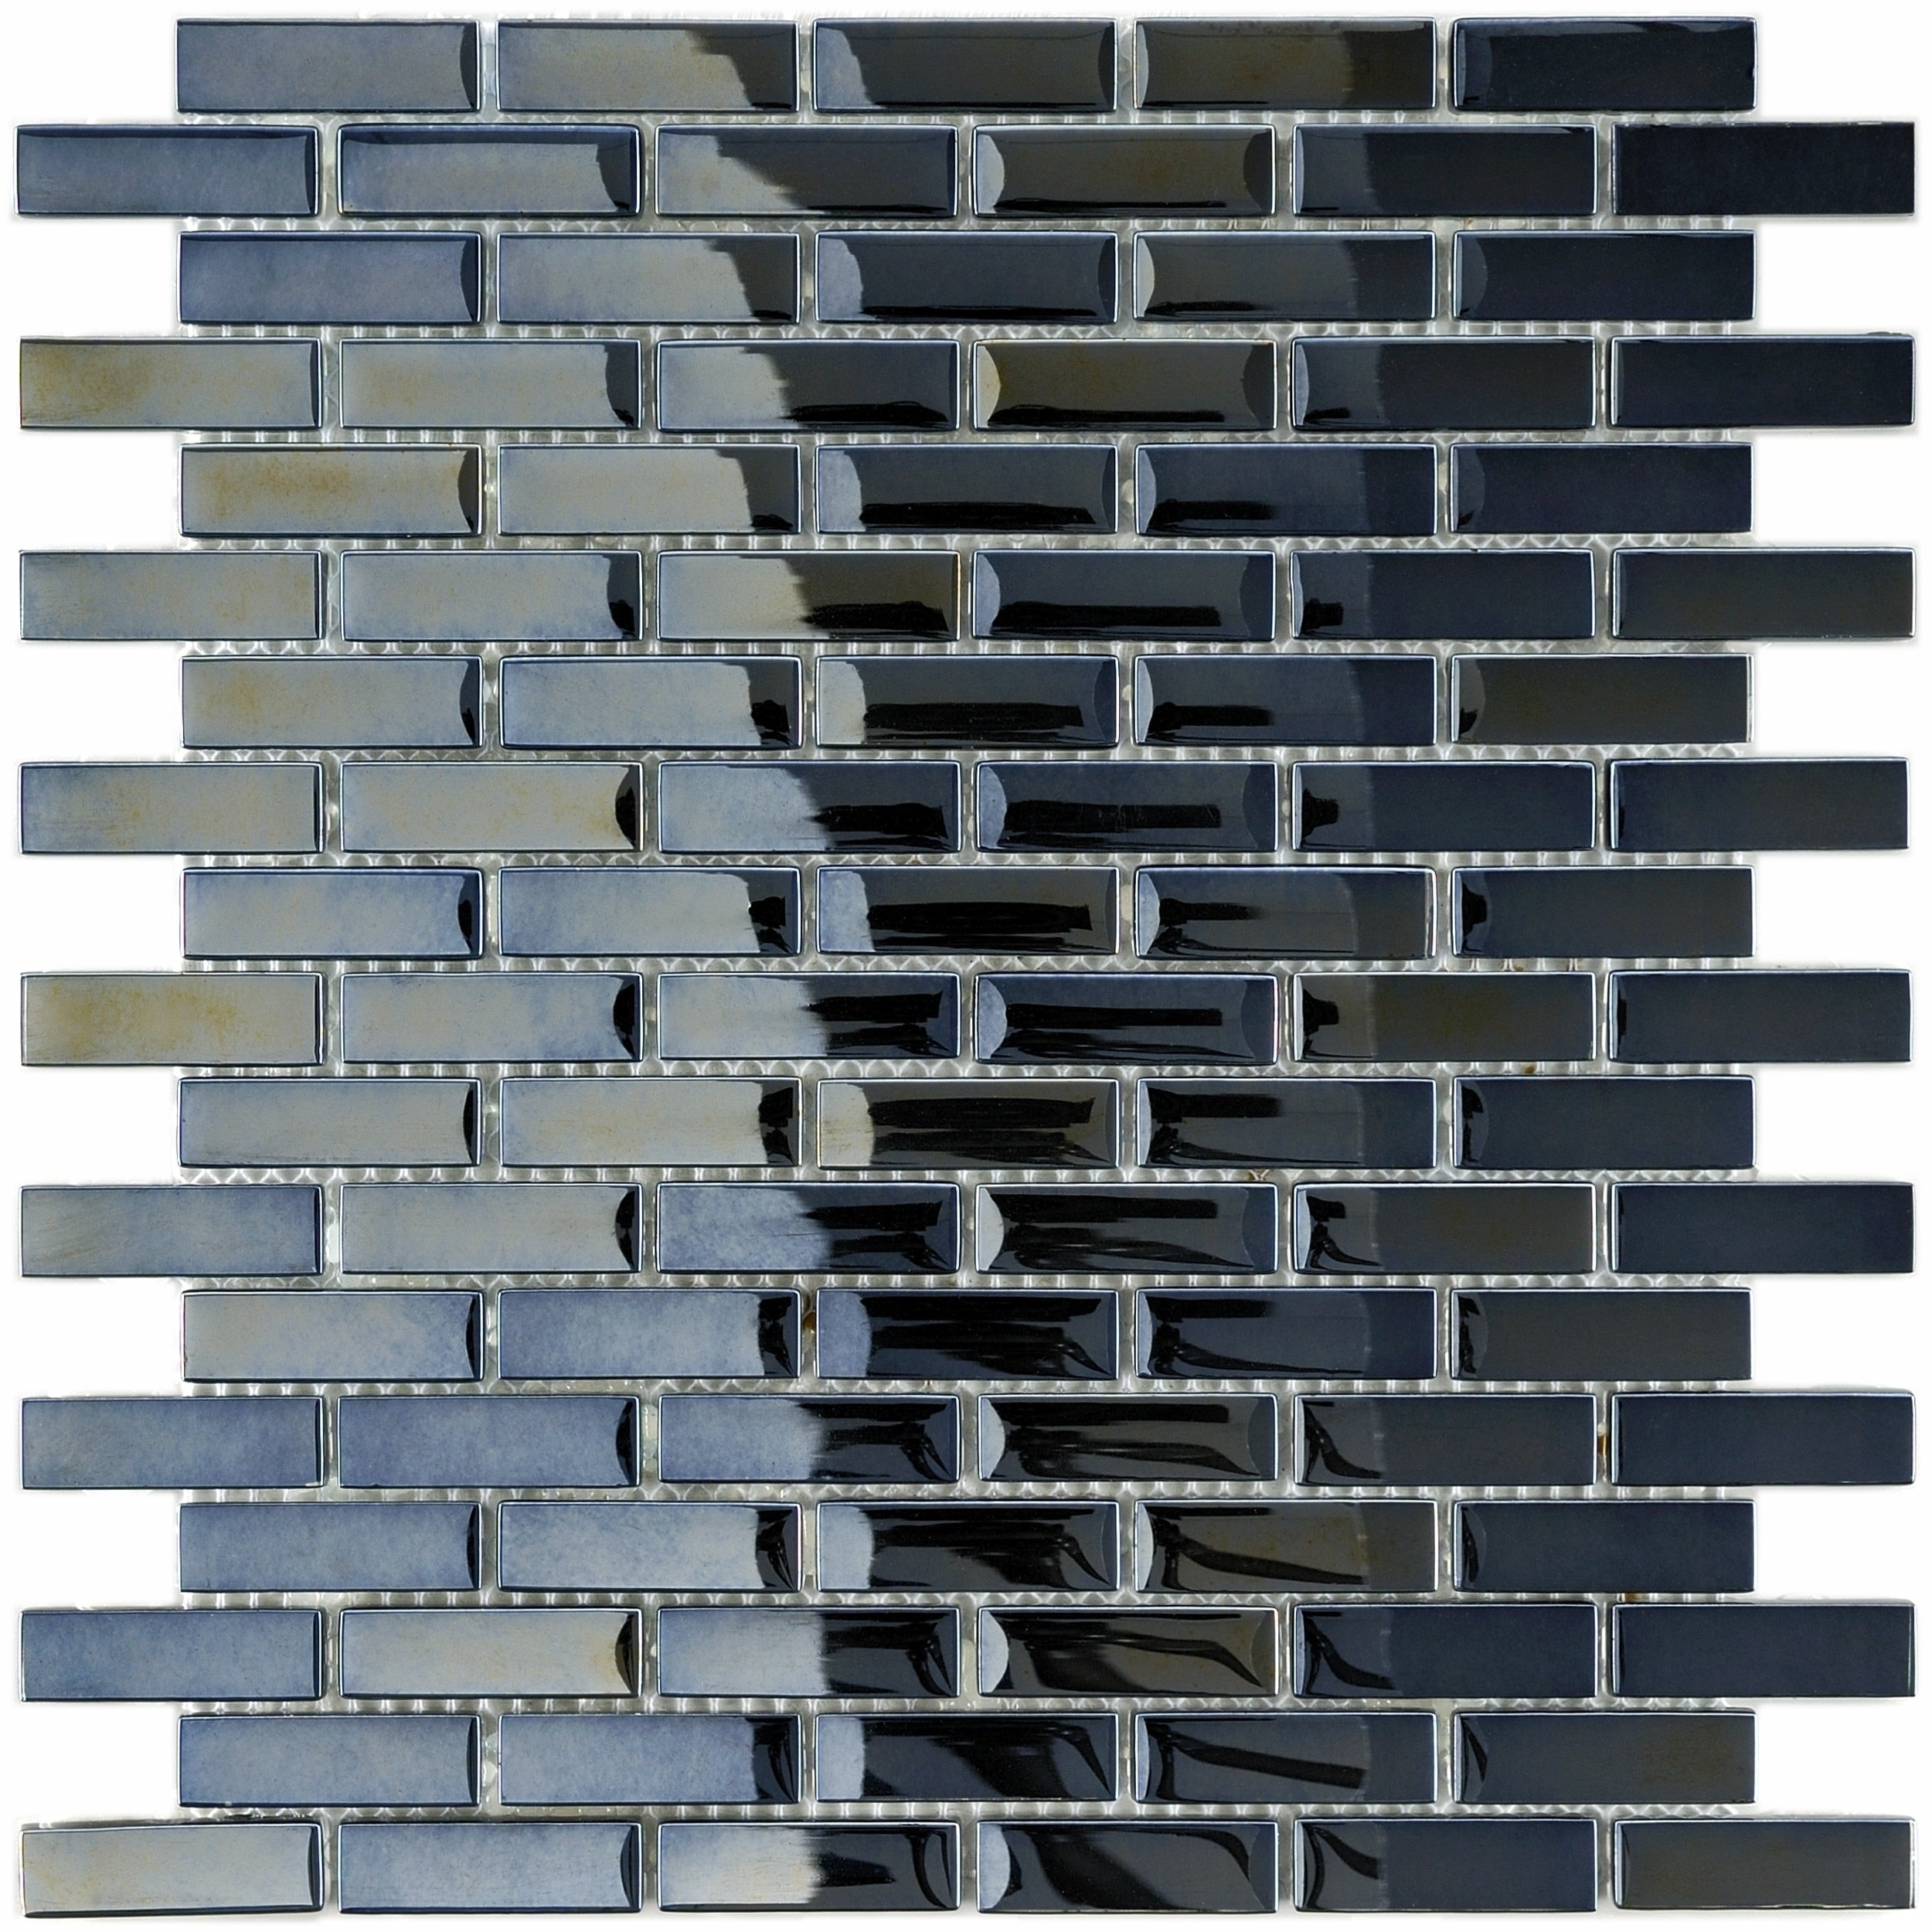 Somertile 1175x1175 inch obsidian subway mirror glass mosaic wall somertile 1175x1175 inch obsidian subway mirror glass mosaic wall tile 10 tiles96 sqft free shipping today overstock 12378435 dailygadgetfo Choice Image